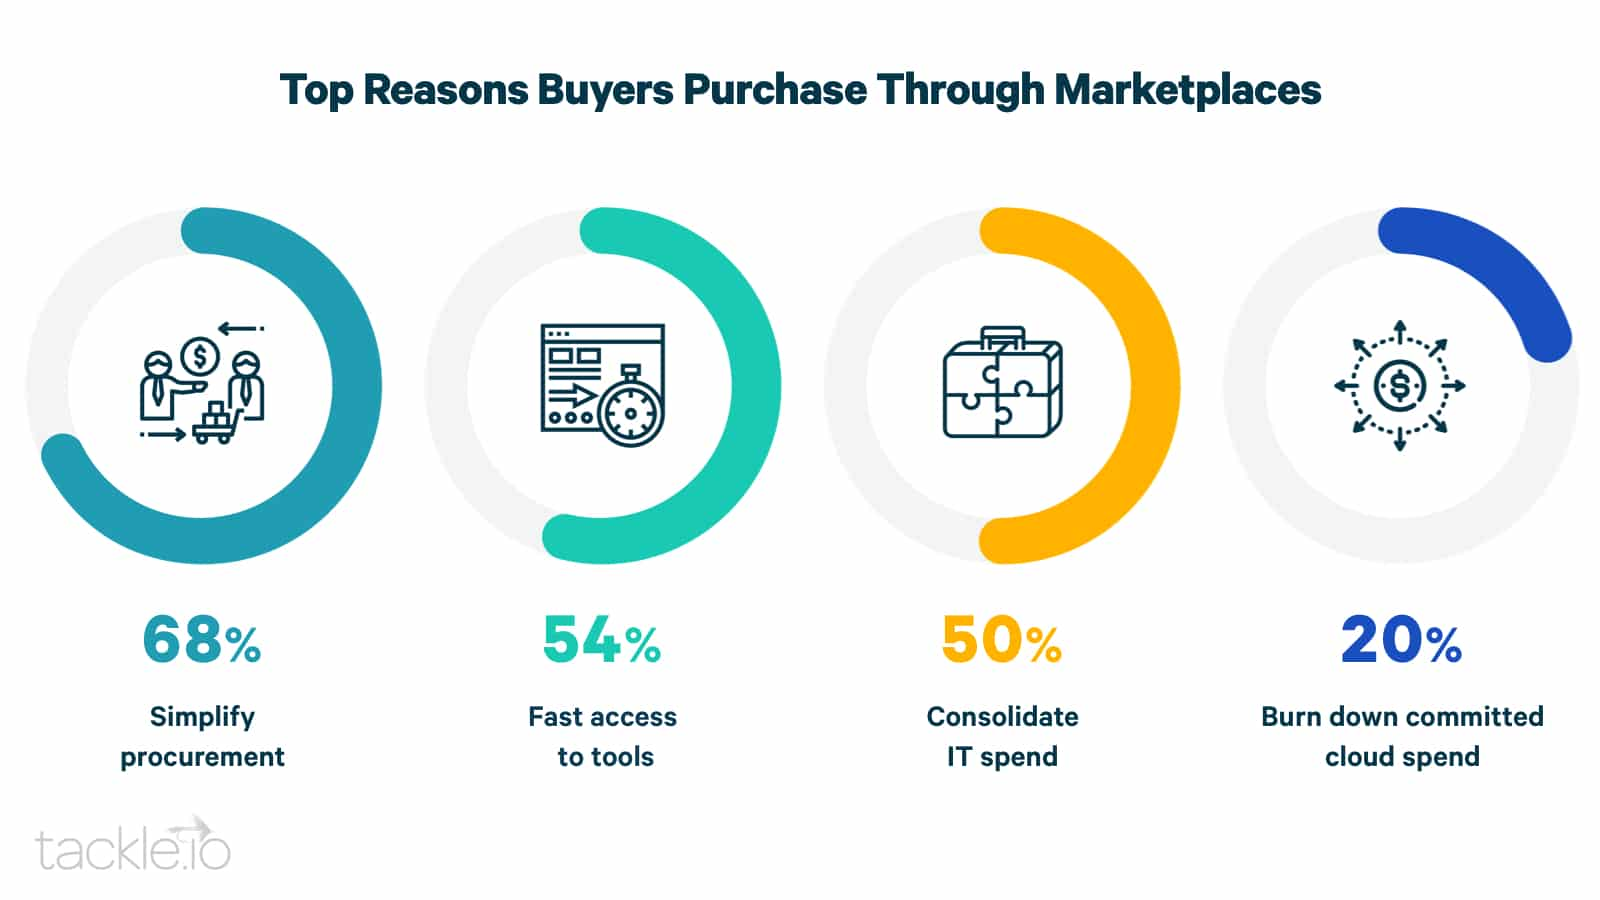 Top purchase reasons